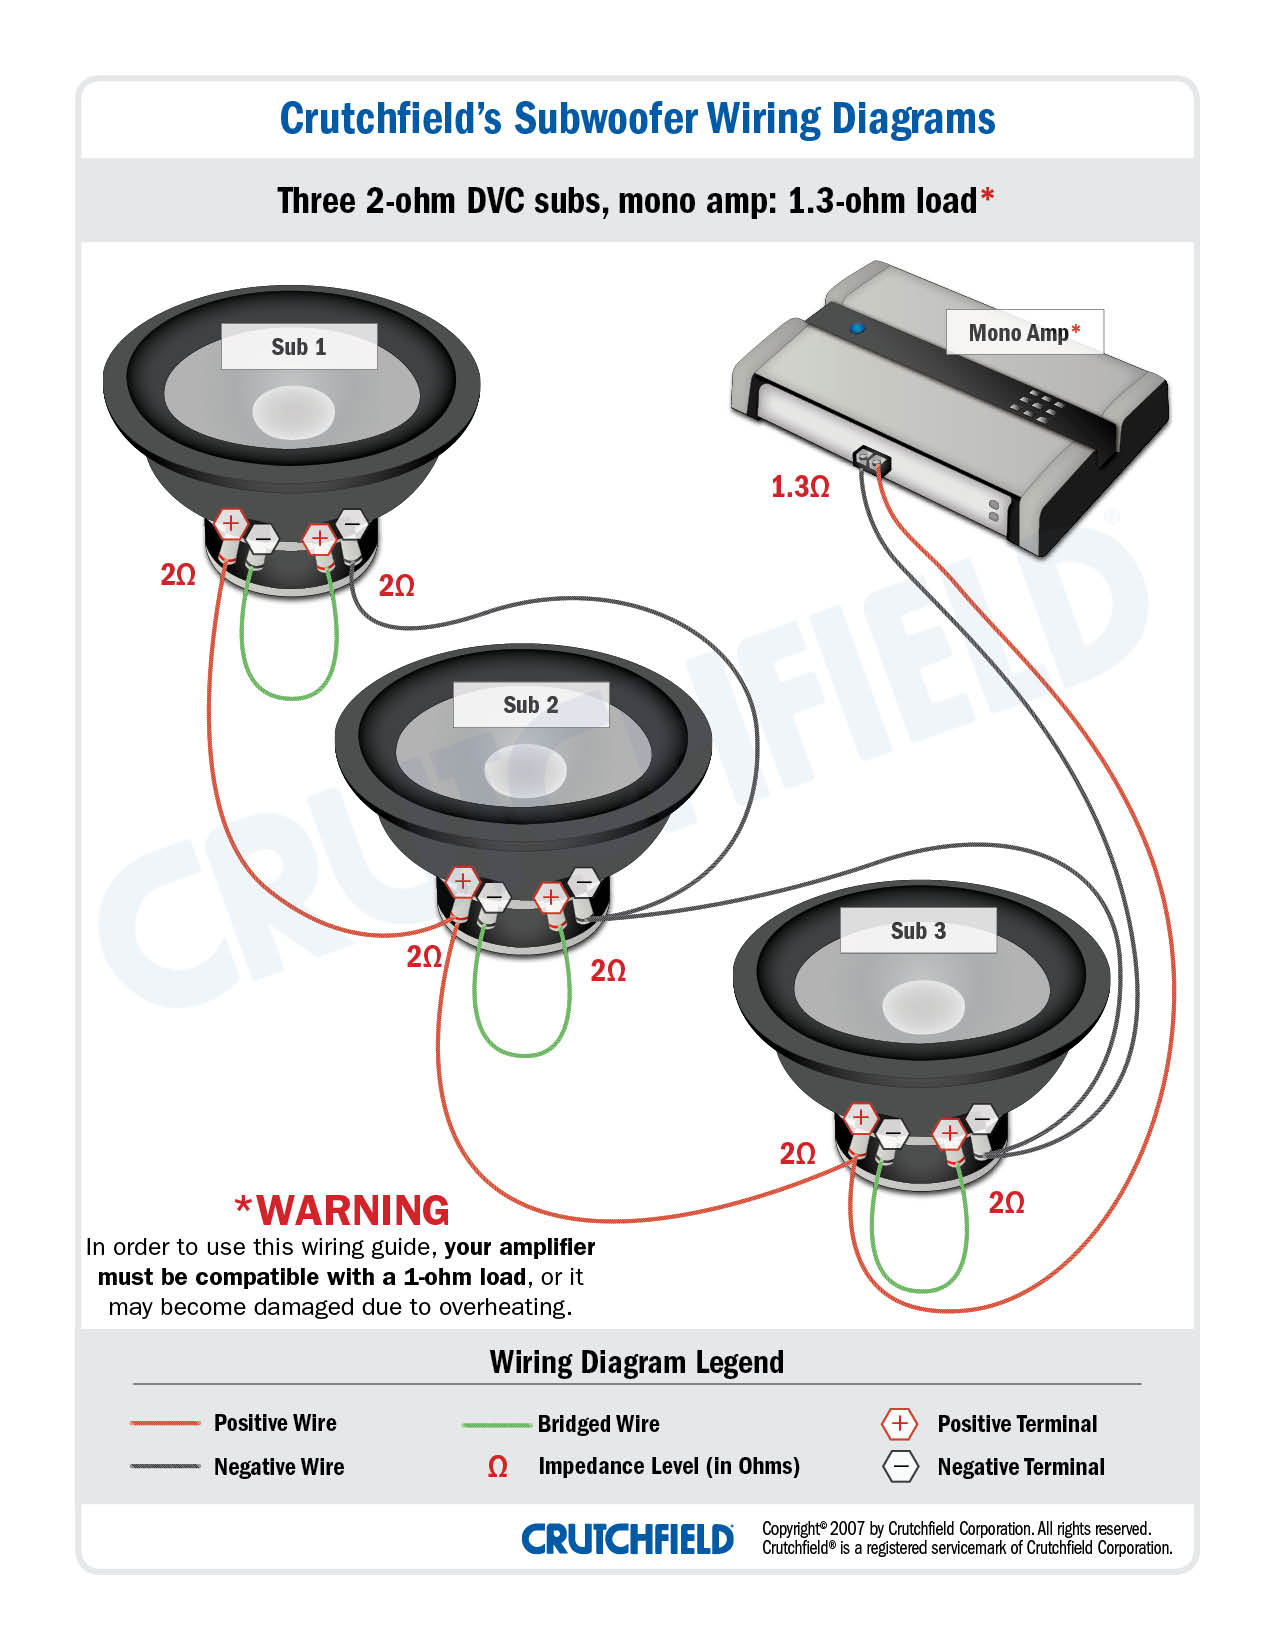 3 DVC 2 ohm mono low imp subwoofer wiring diagrams wiring harness subs at couponss.co